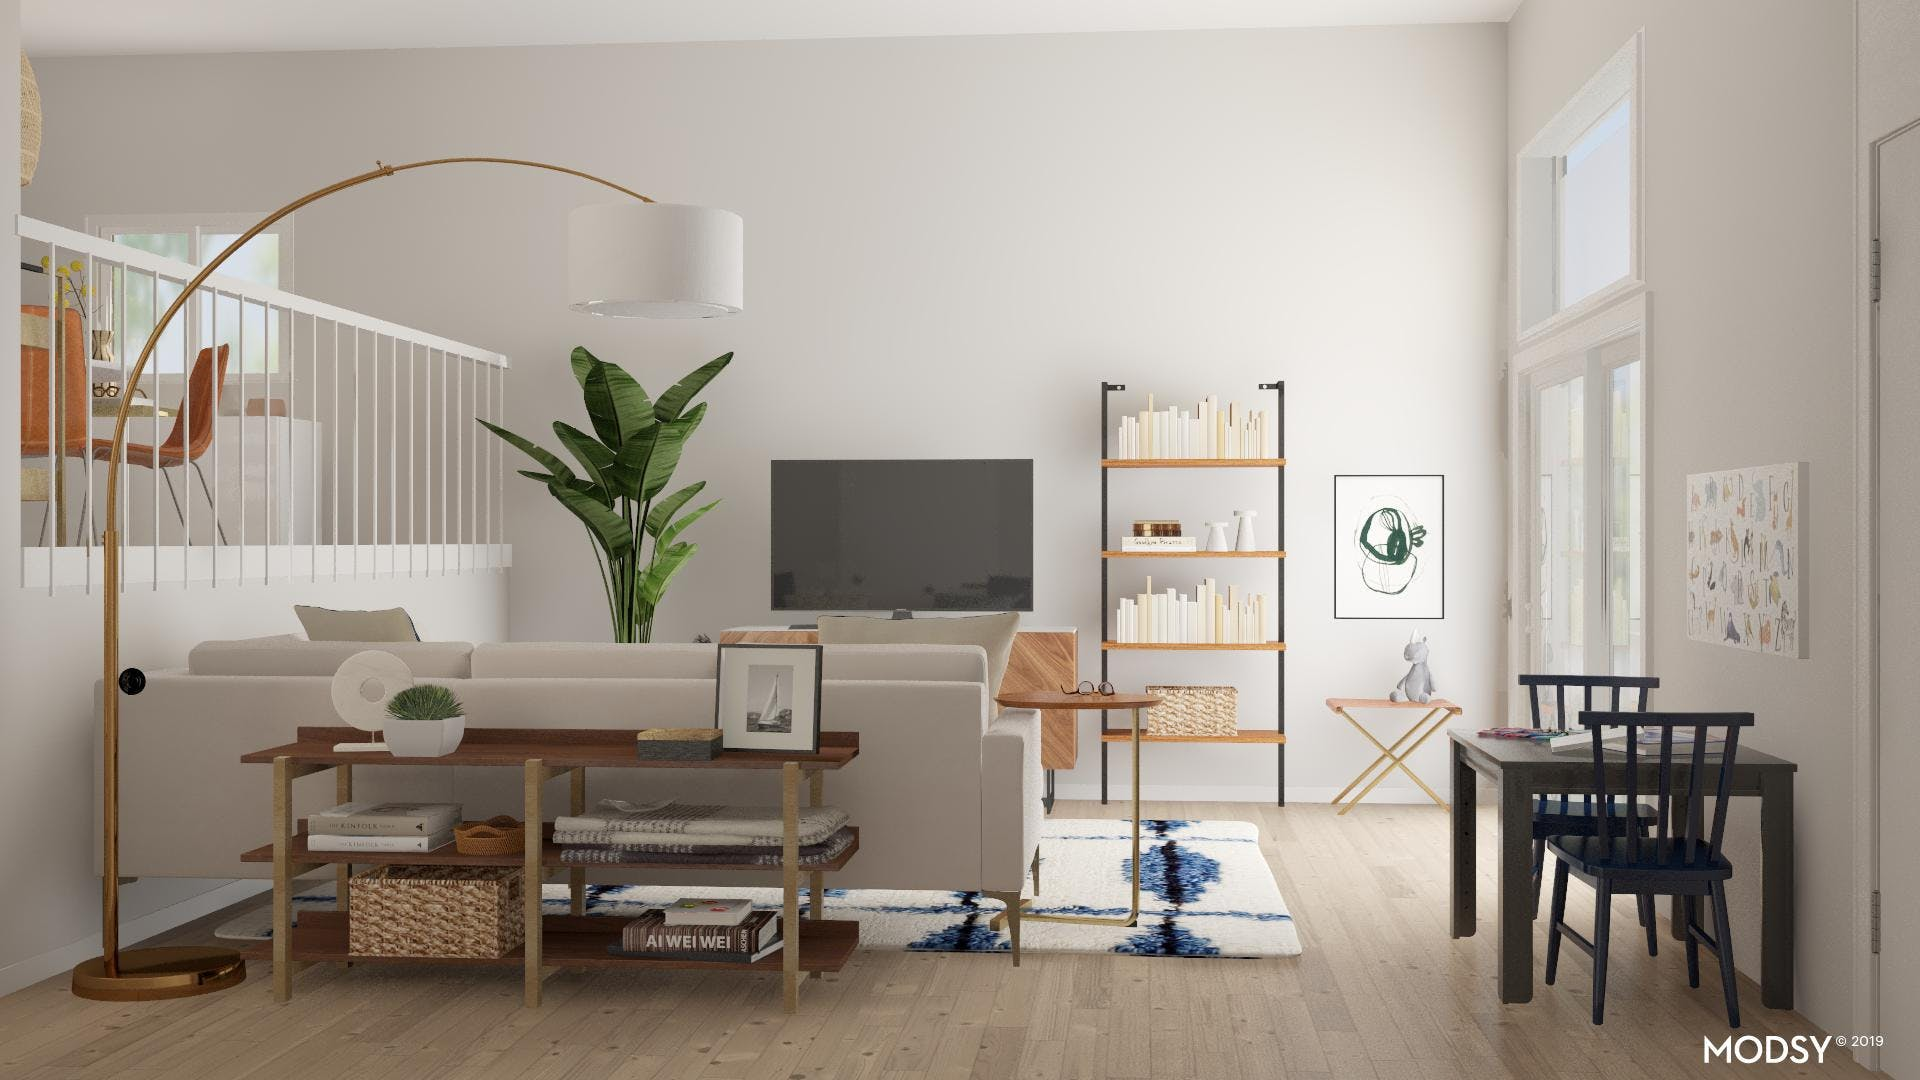 A Kids Space Within The Living Room